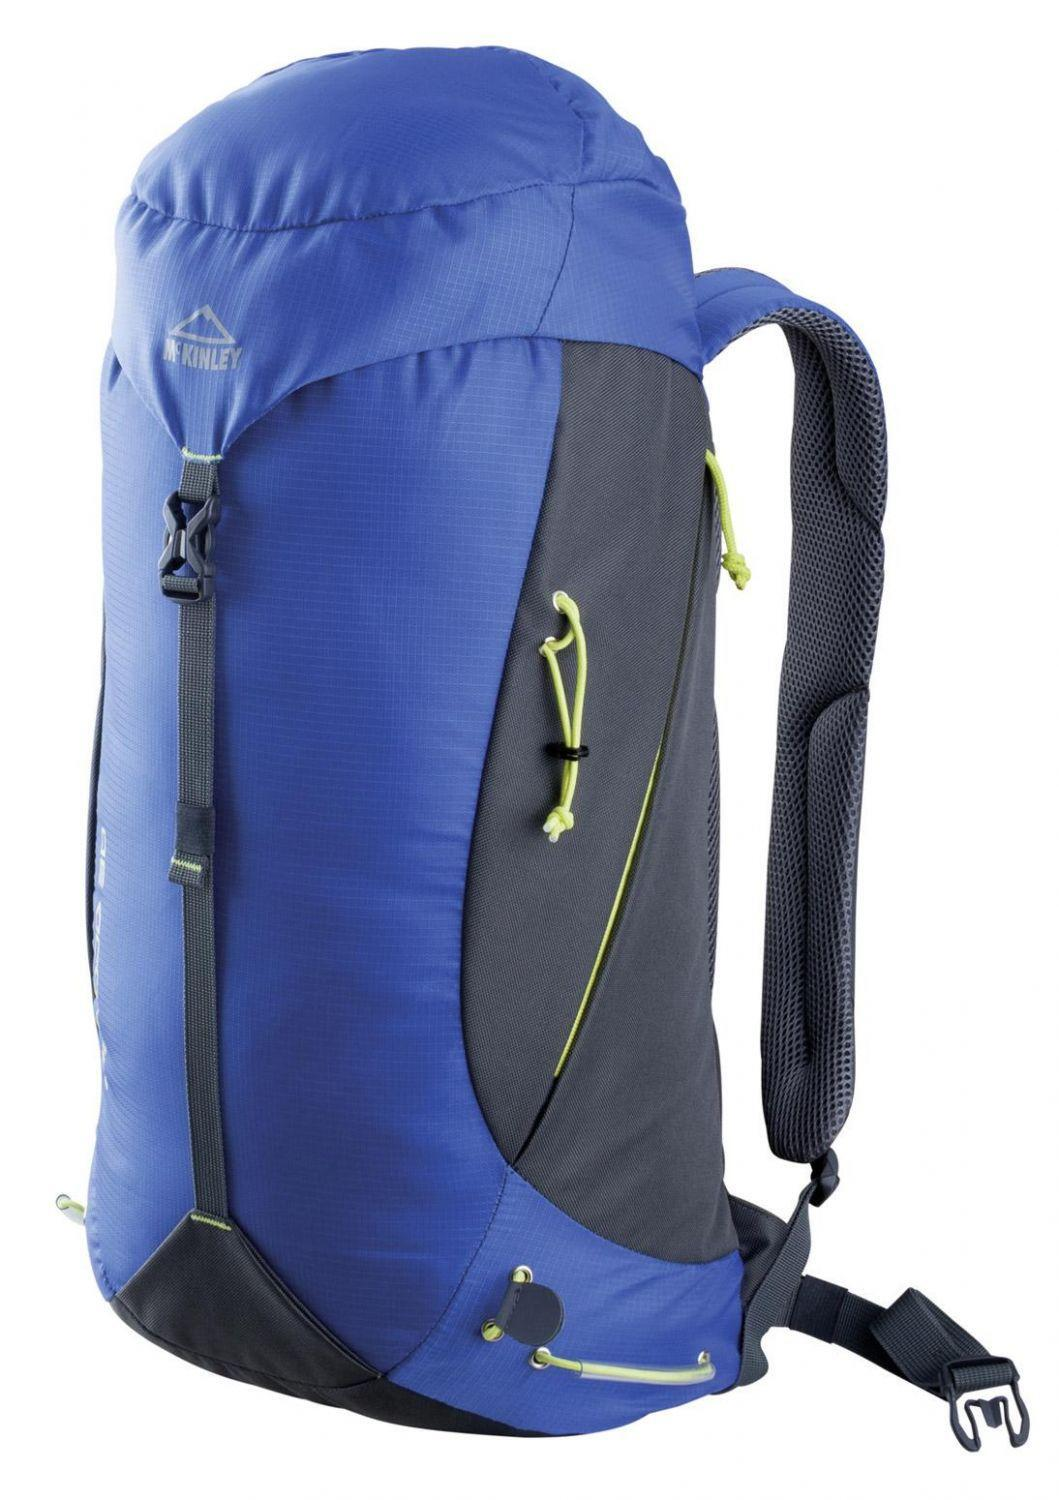 mckinley-midwood-junior-wanderrucksack-farbe-902-blau-anthrazit-lime-